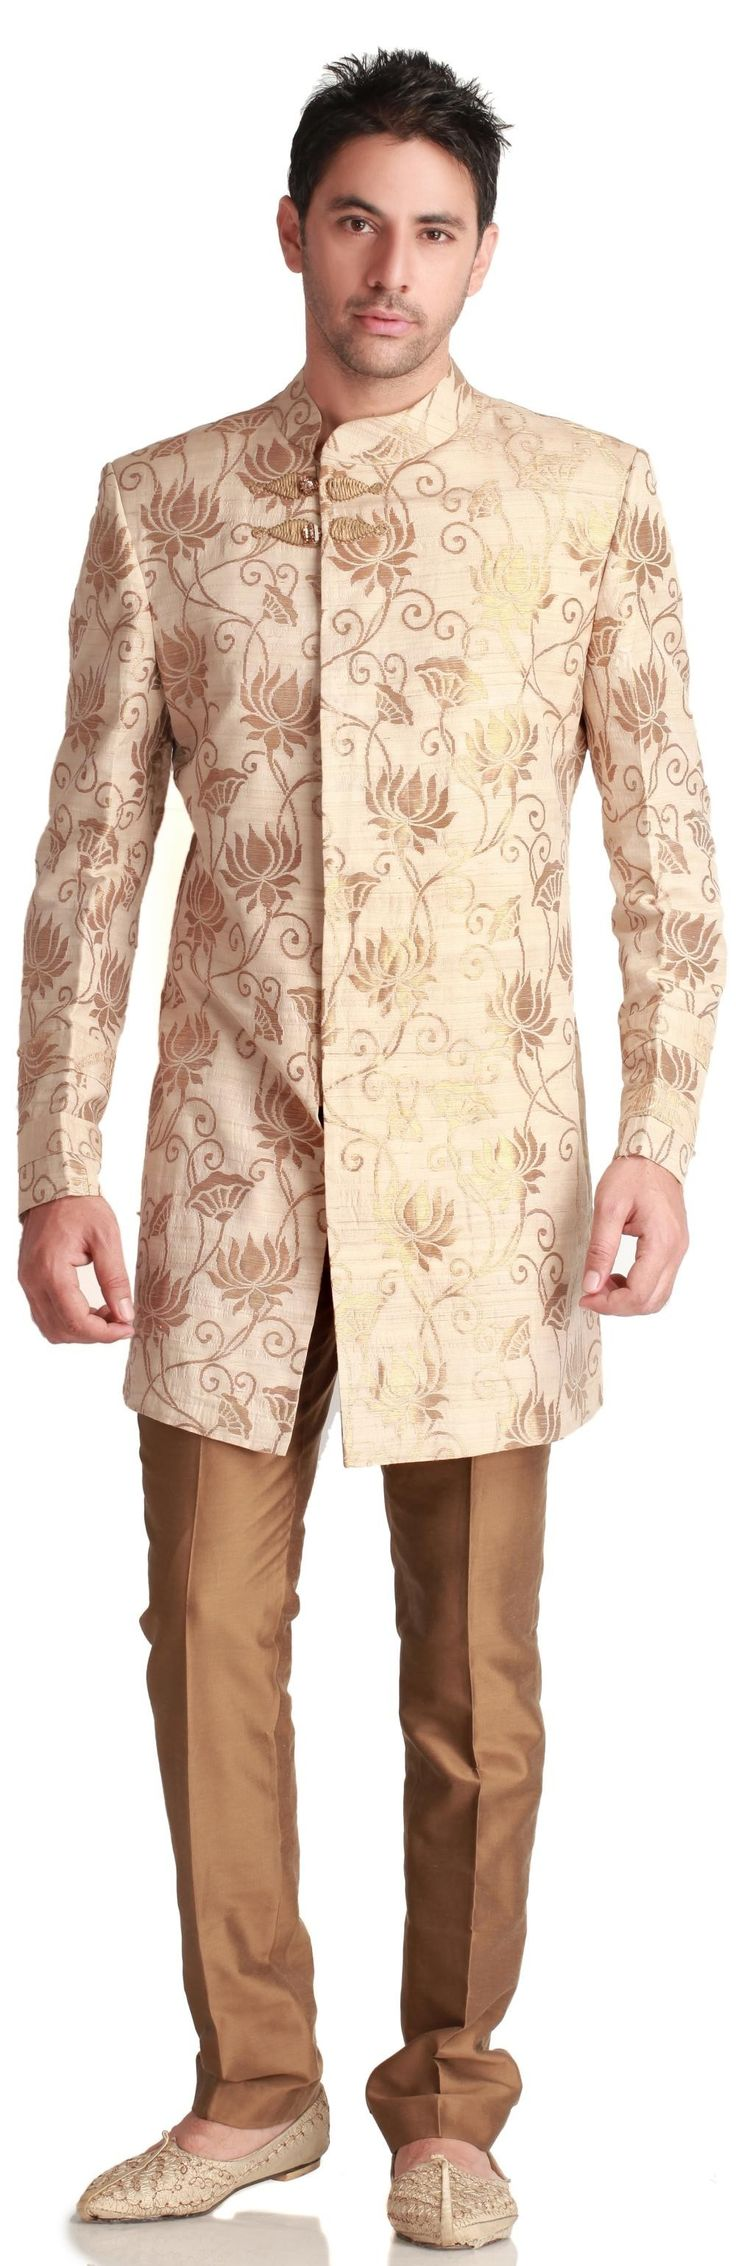 For the Glam groom, who isn't afraid of the spotlight: draw all eyes on him with this Virtues woven-gold-and-cream sherwani ($655.00), with off-centered clasps. Comes with fitted, bronze-gold trousers.